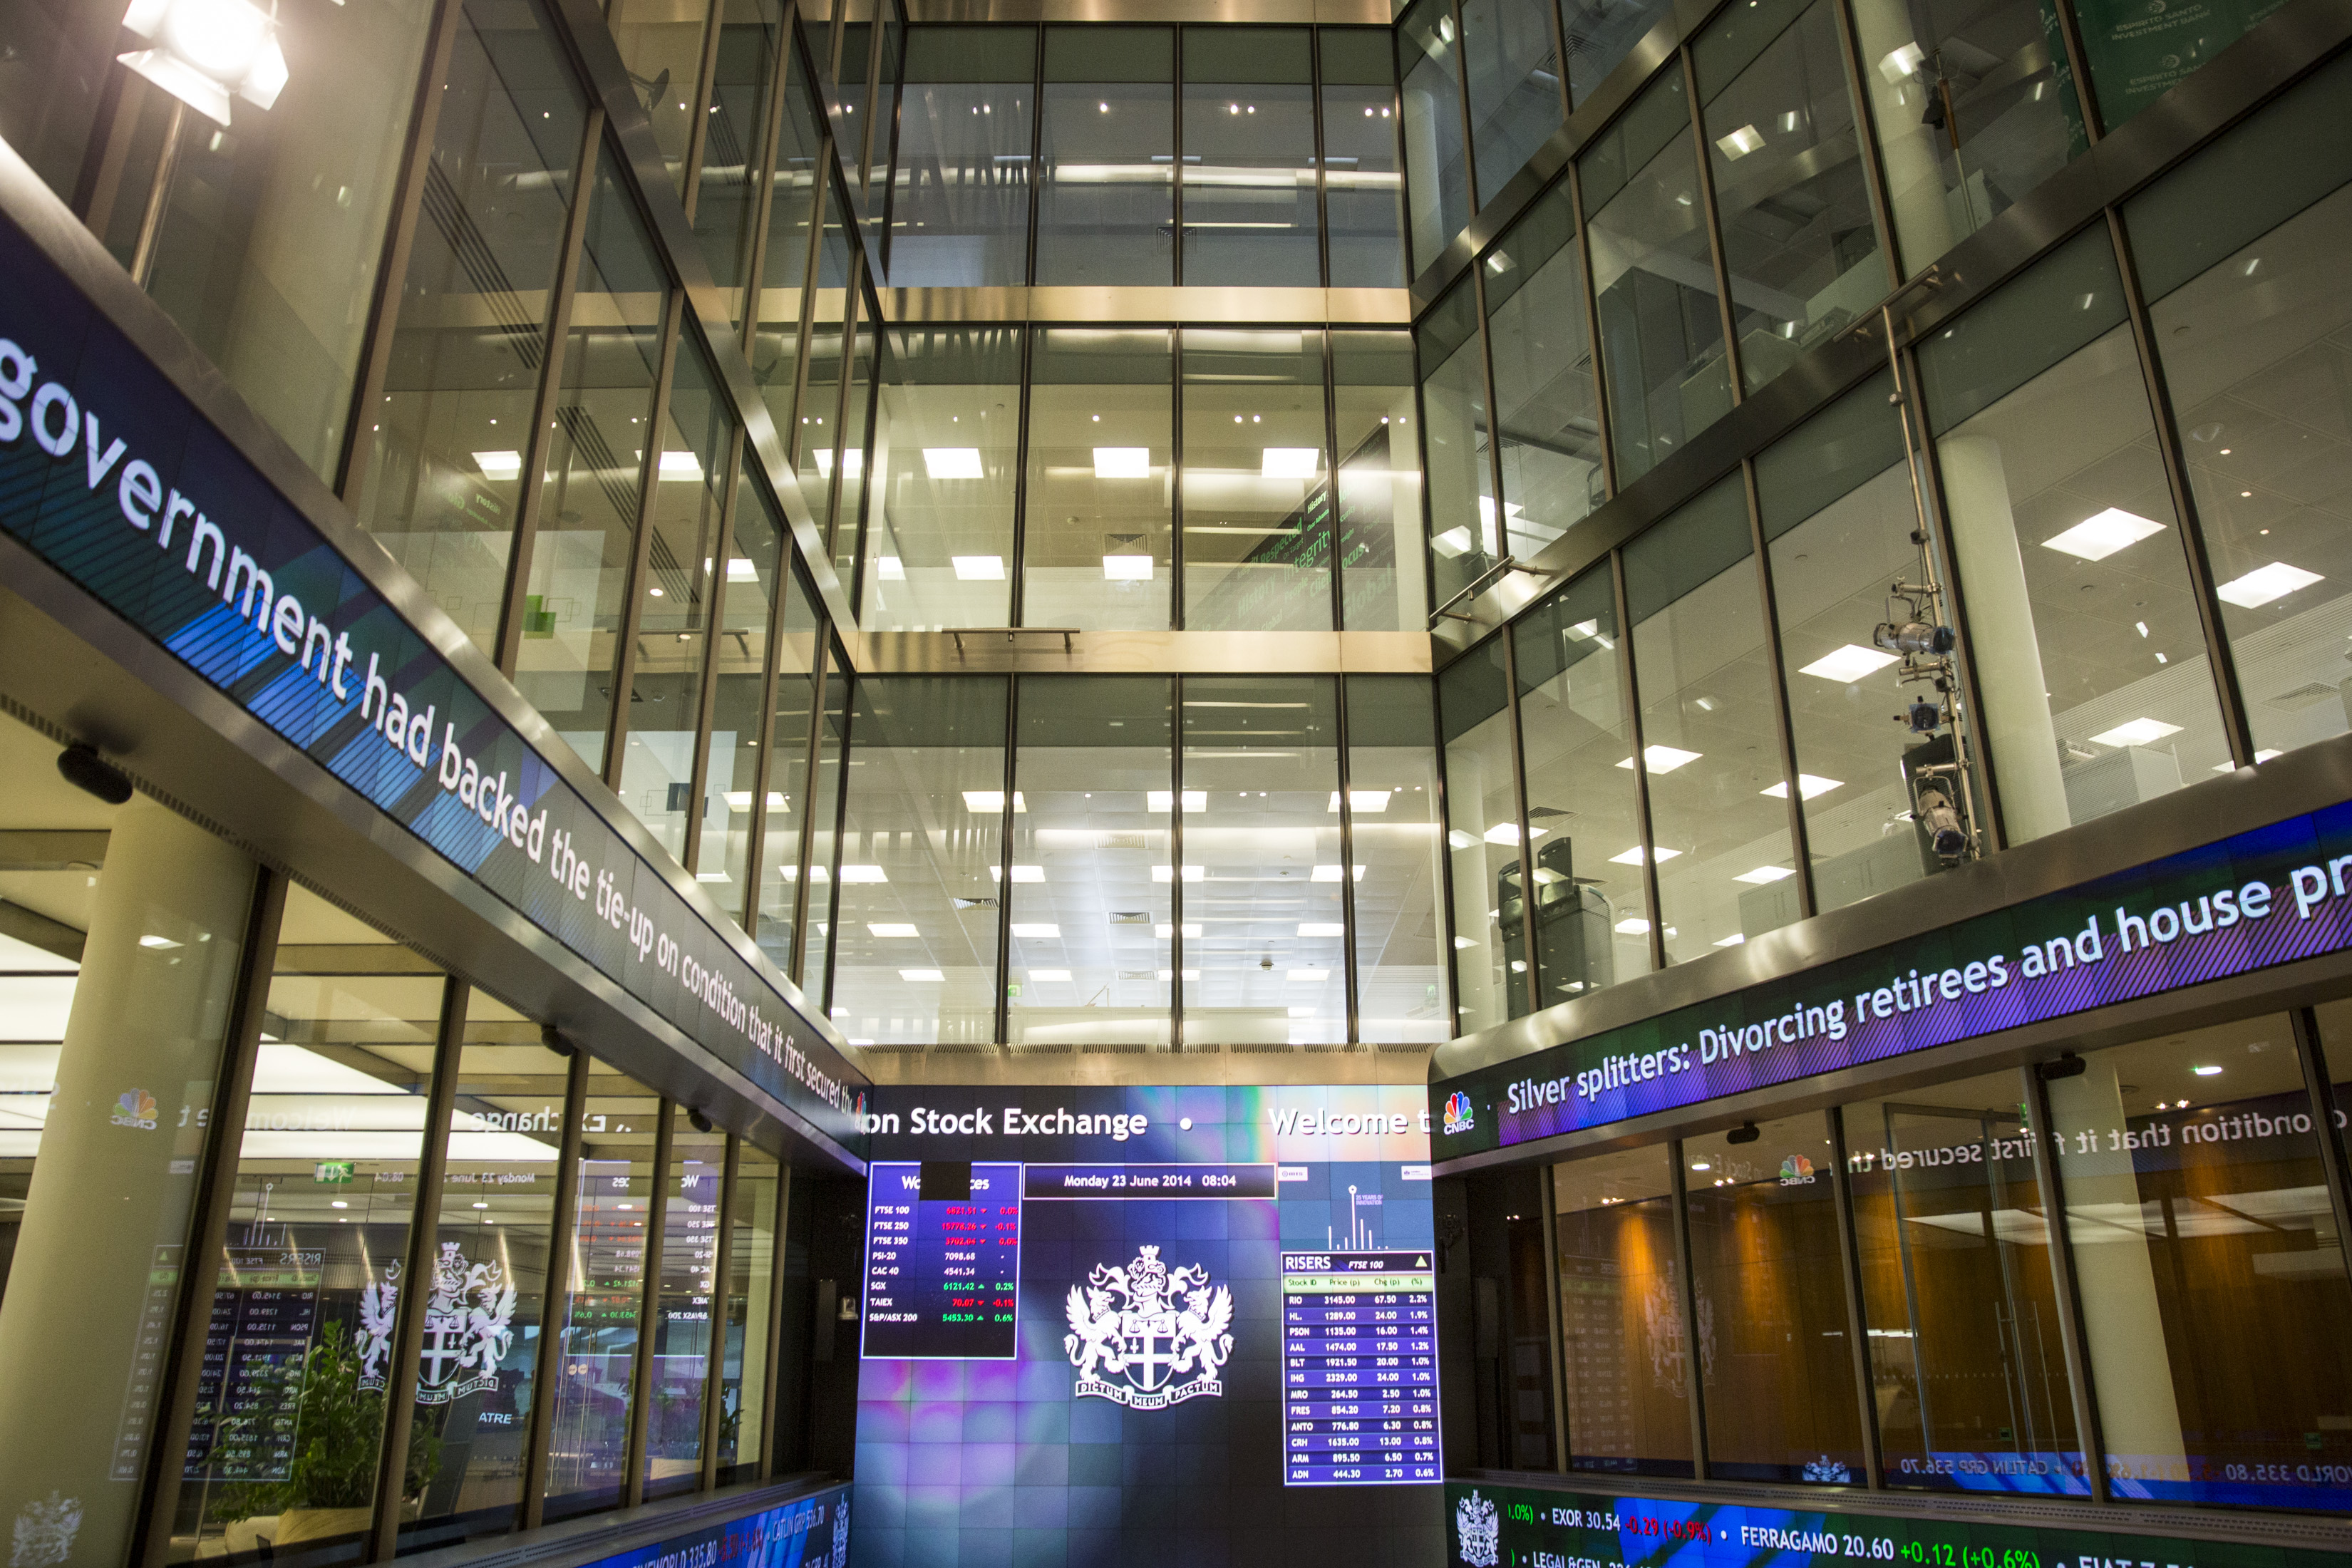 London Stock Exchange Is Opened By A Choir